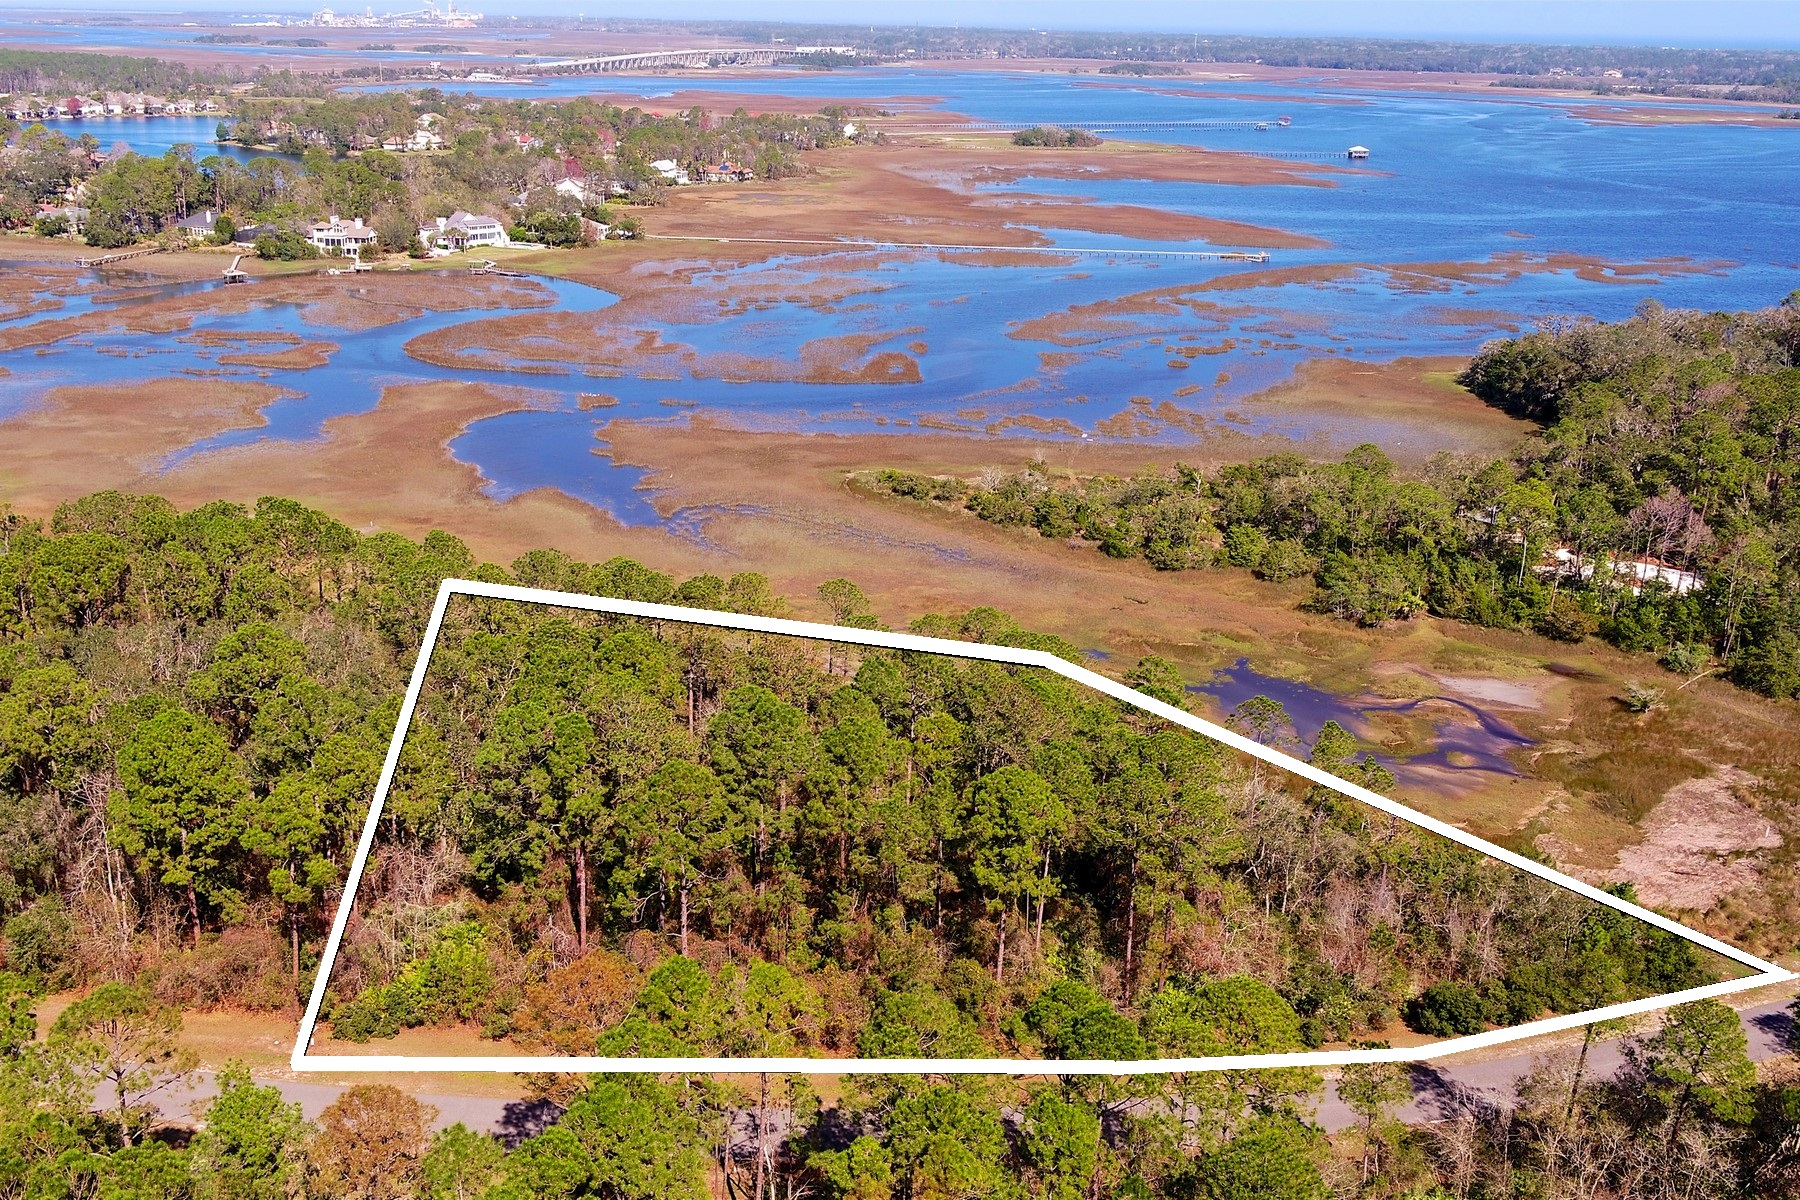 Land for Sale at 96130 & 96138 Brady Point 96130 & 96138 Brady Point Rd Fernandina Beach, Florida 32034 United States